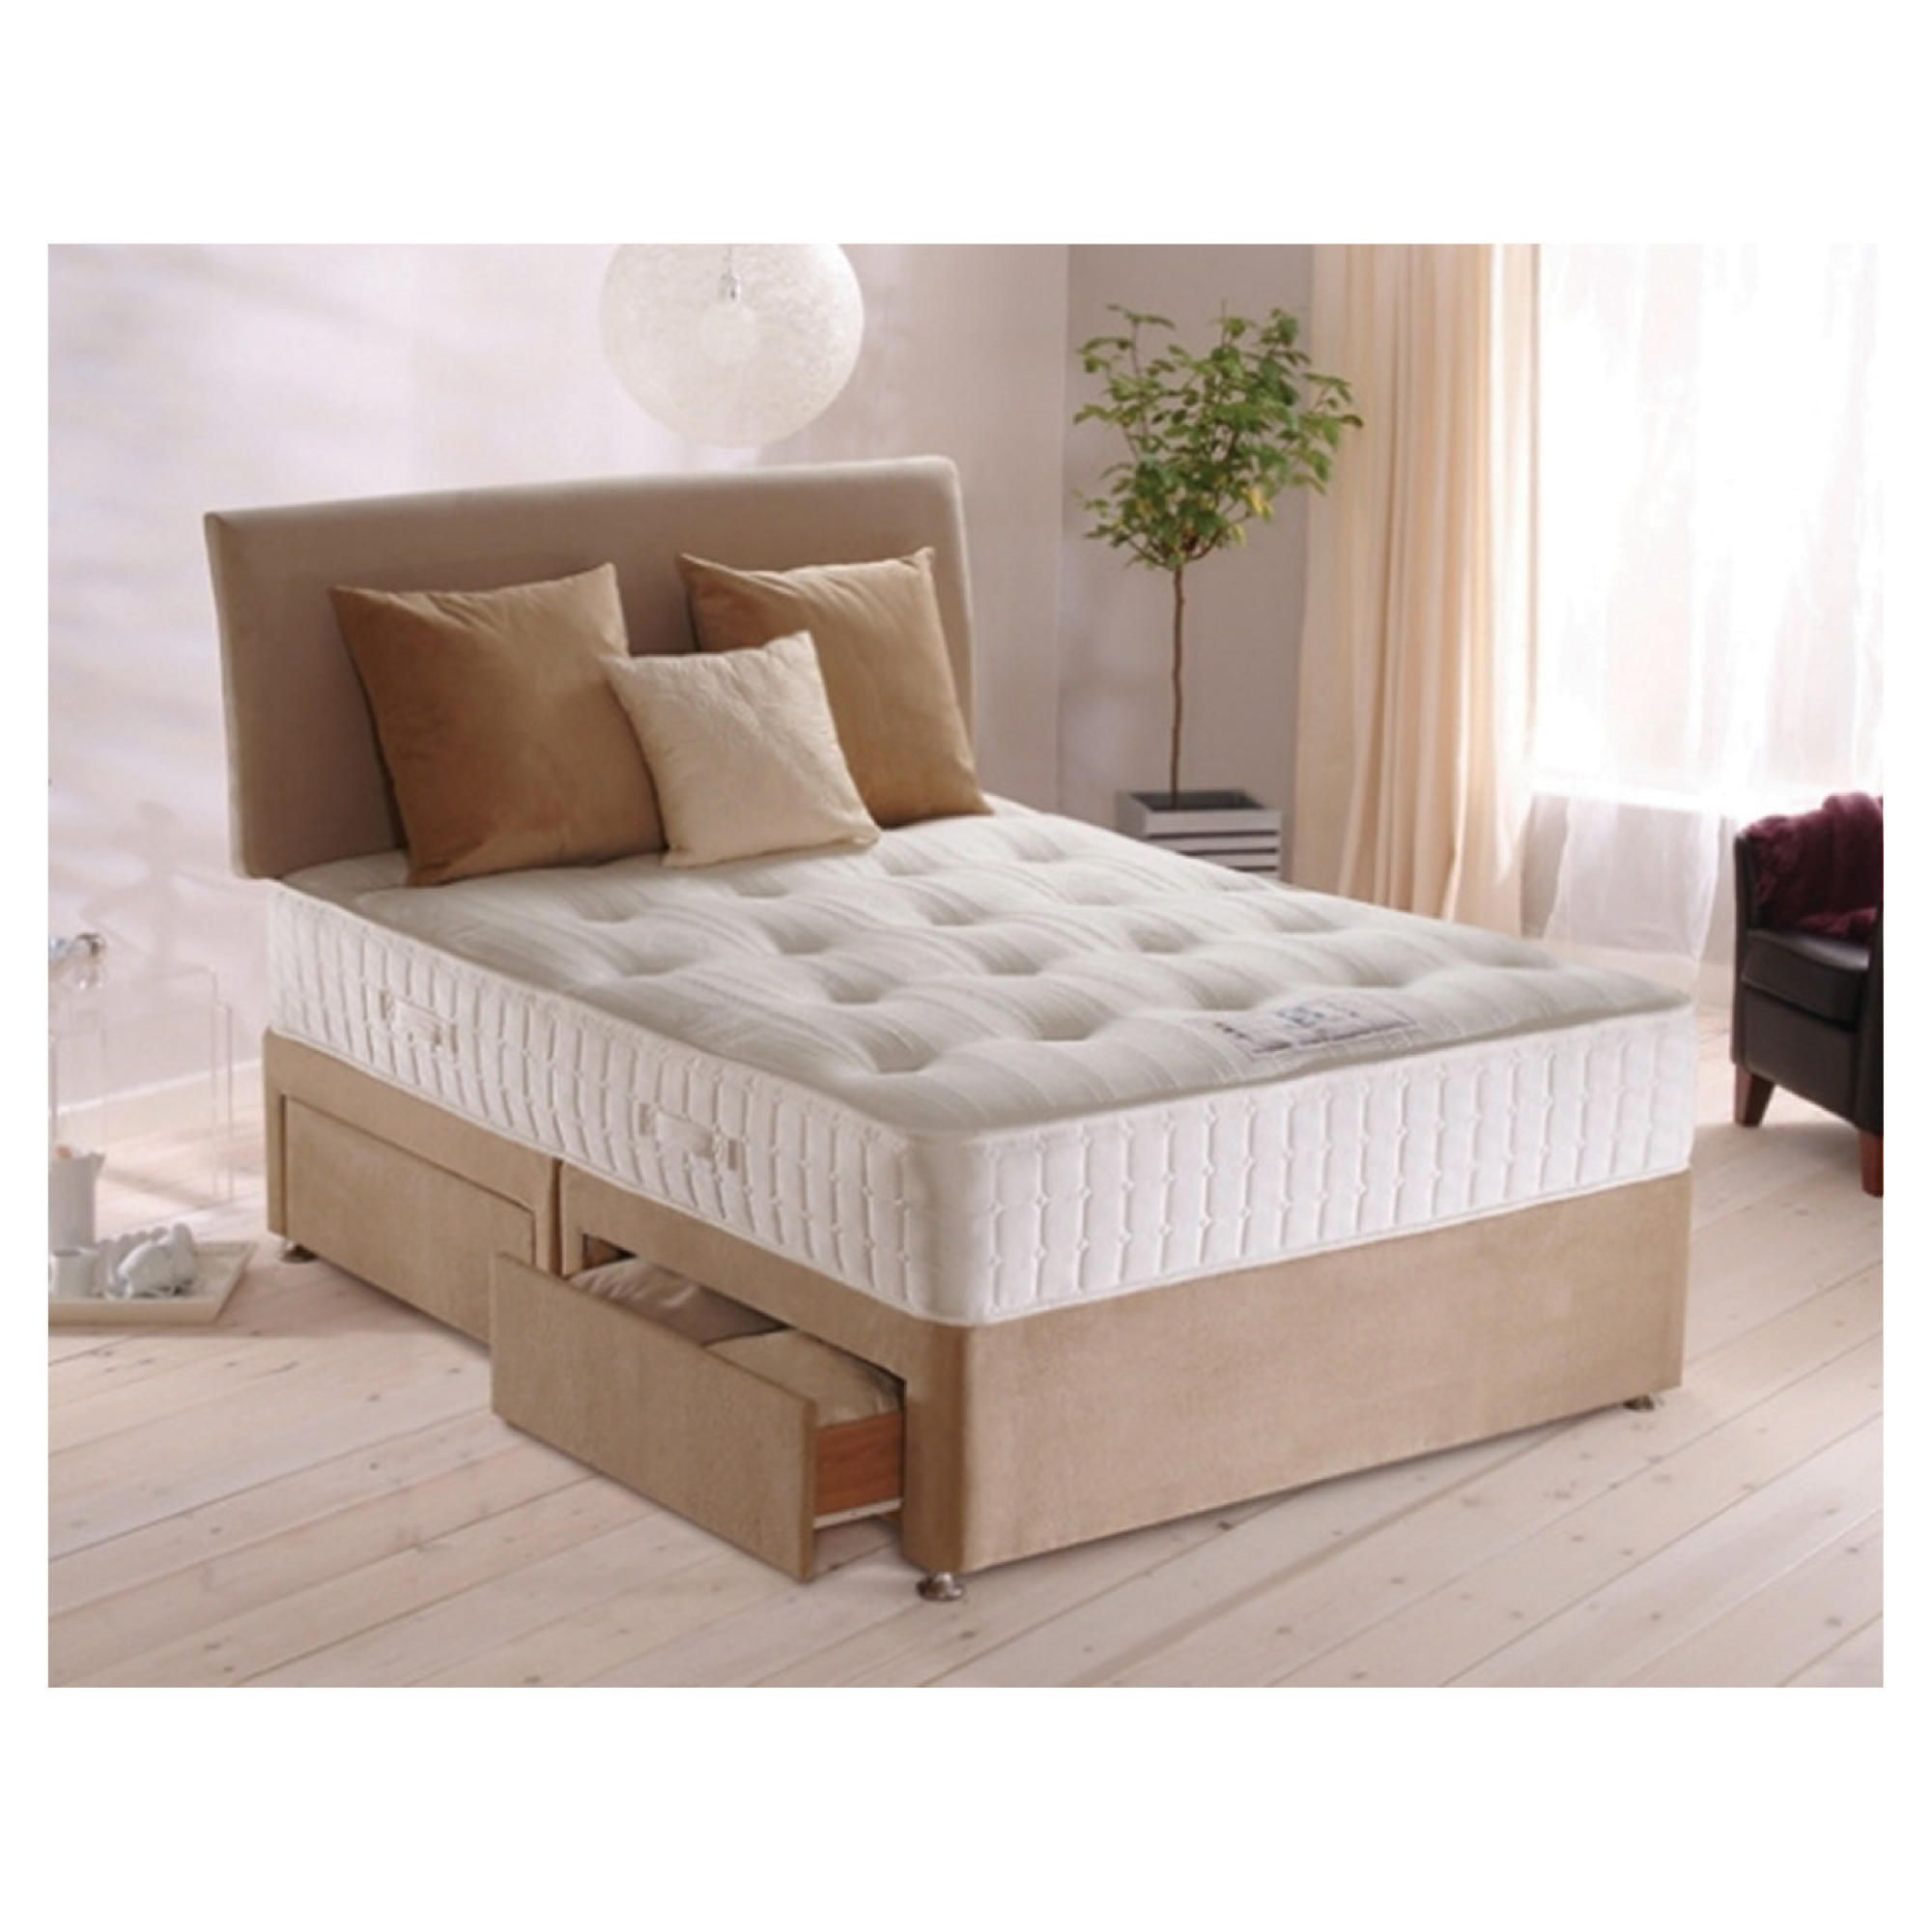 Sealy Purity Pocket Ortho Superking Non Storage Divan Bed at Tesco Direct